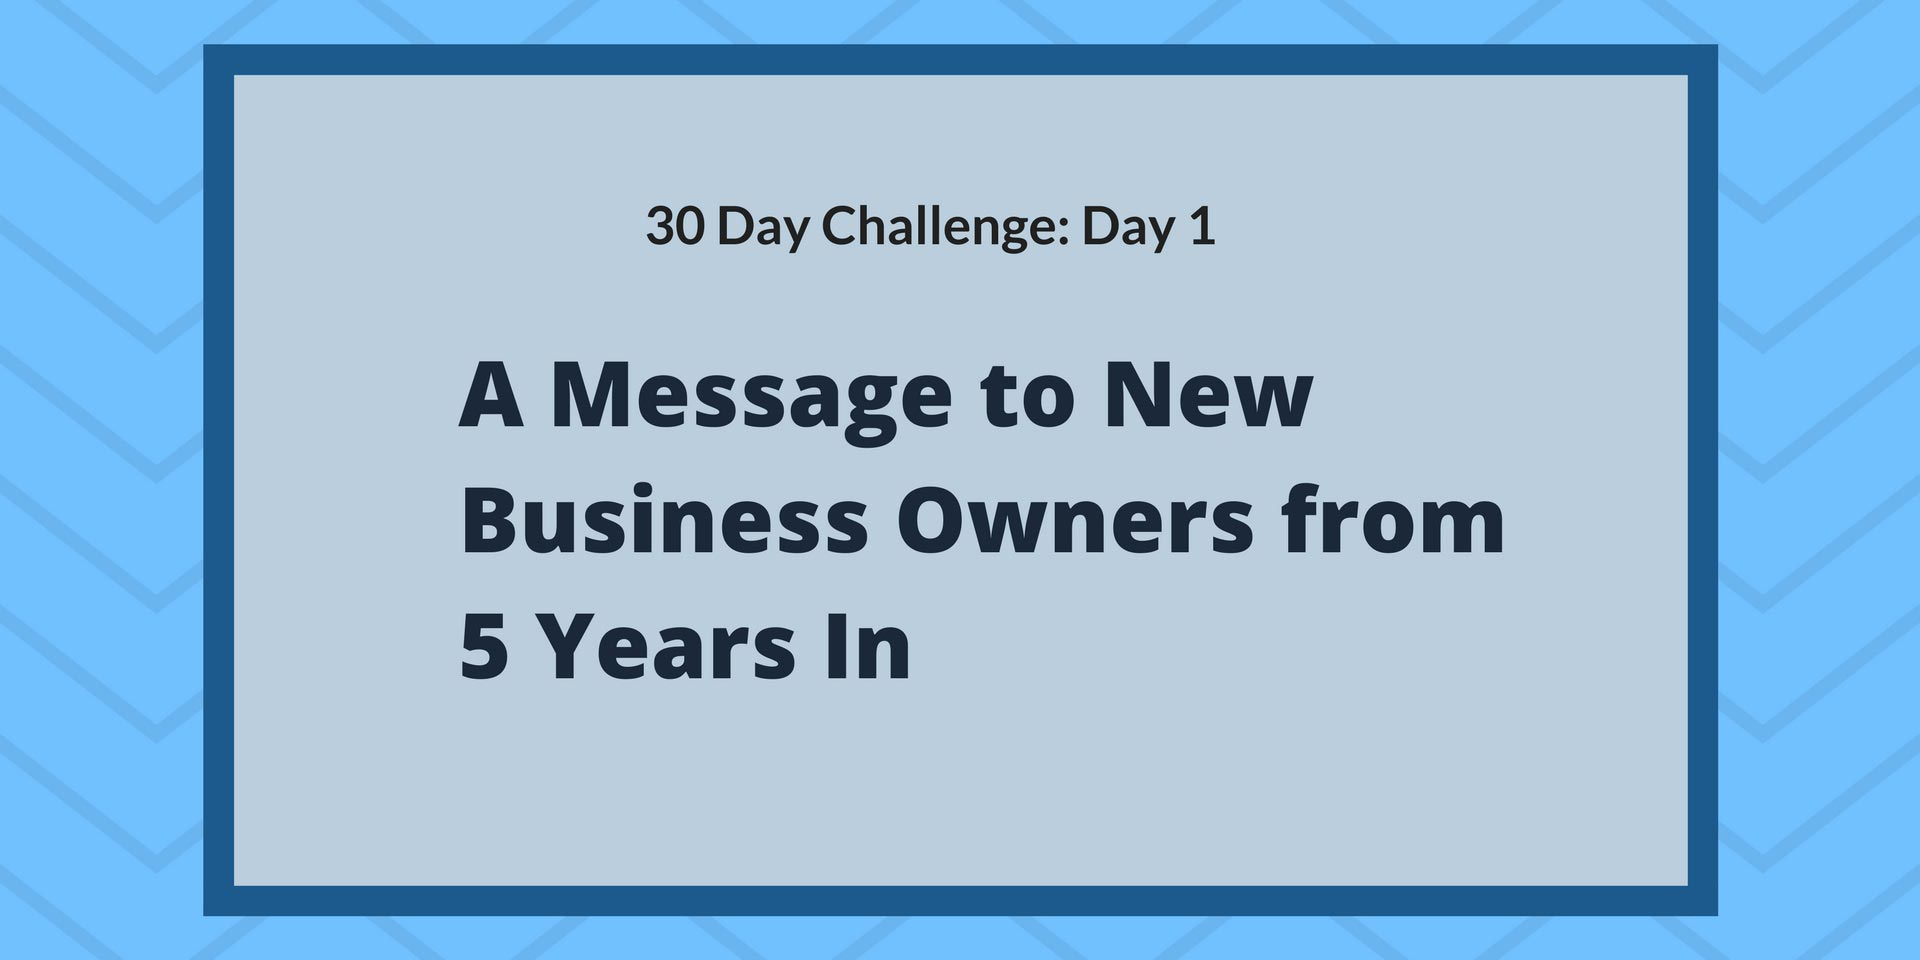 30 Day Challenge Day 1: A message to new business owners